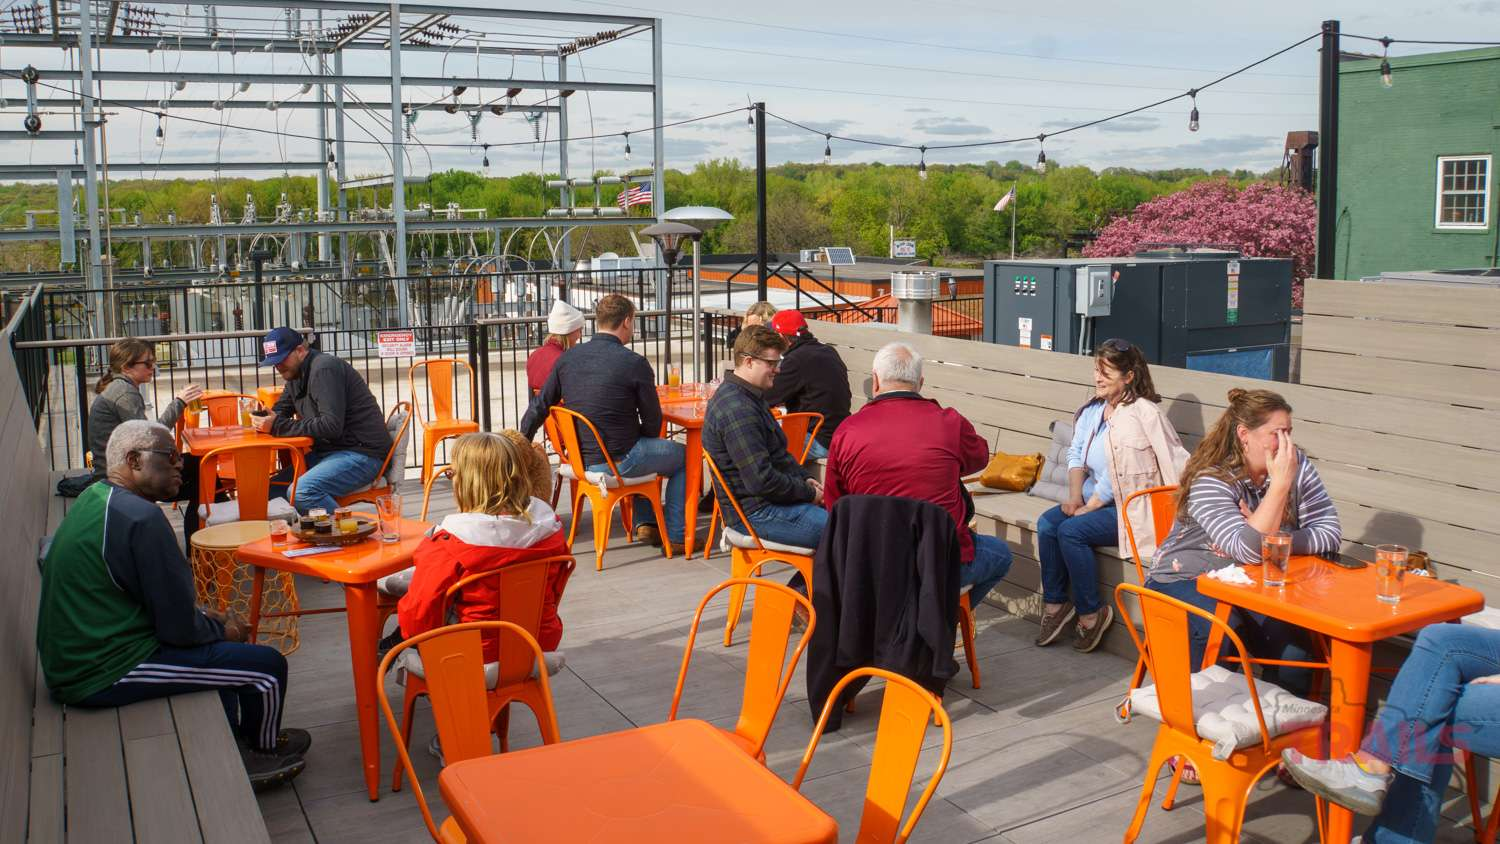 Spiral Brewery's rooftop patio has room for about 30 people